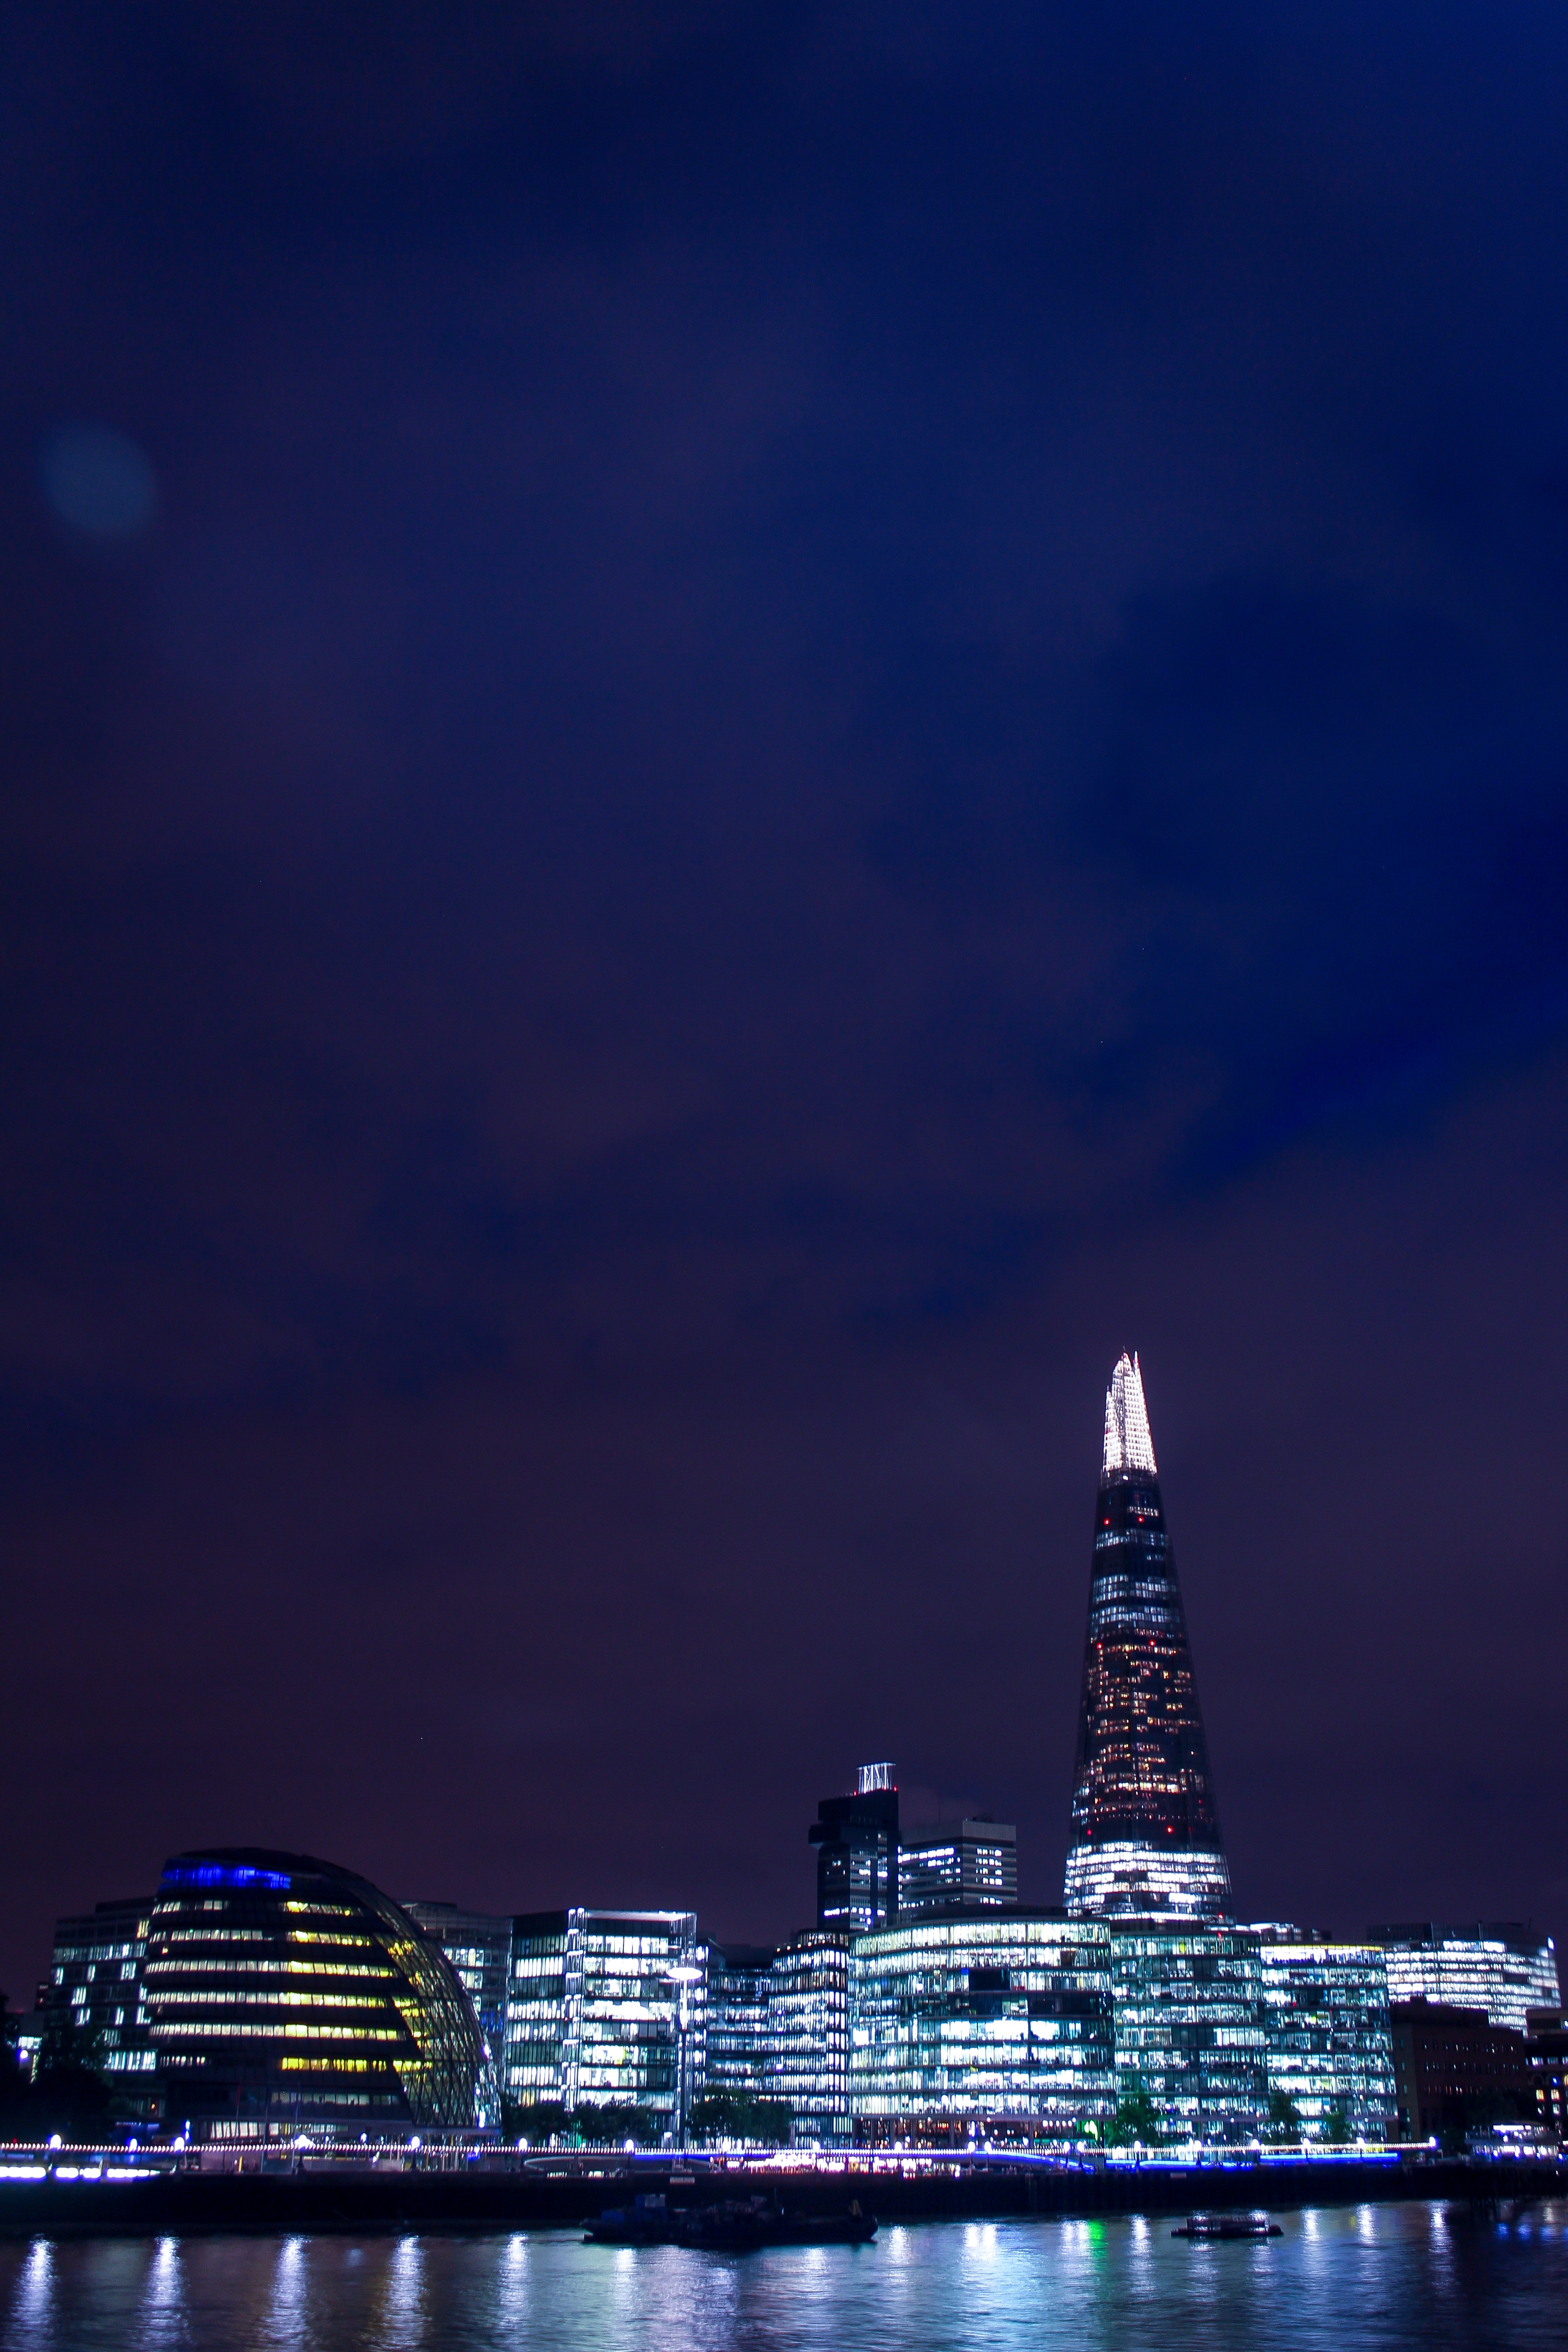 Panoramic Photo of City Buildings during Nighttime, Architecture, Water, Urban, Tower, HQ Photo